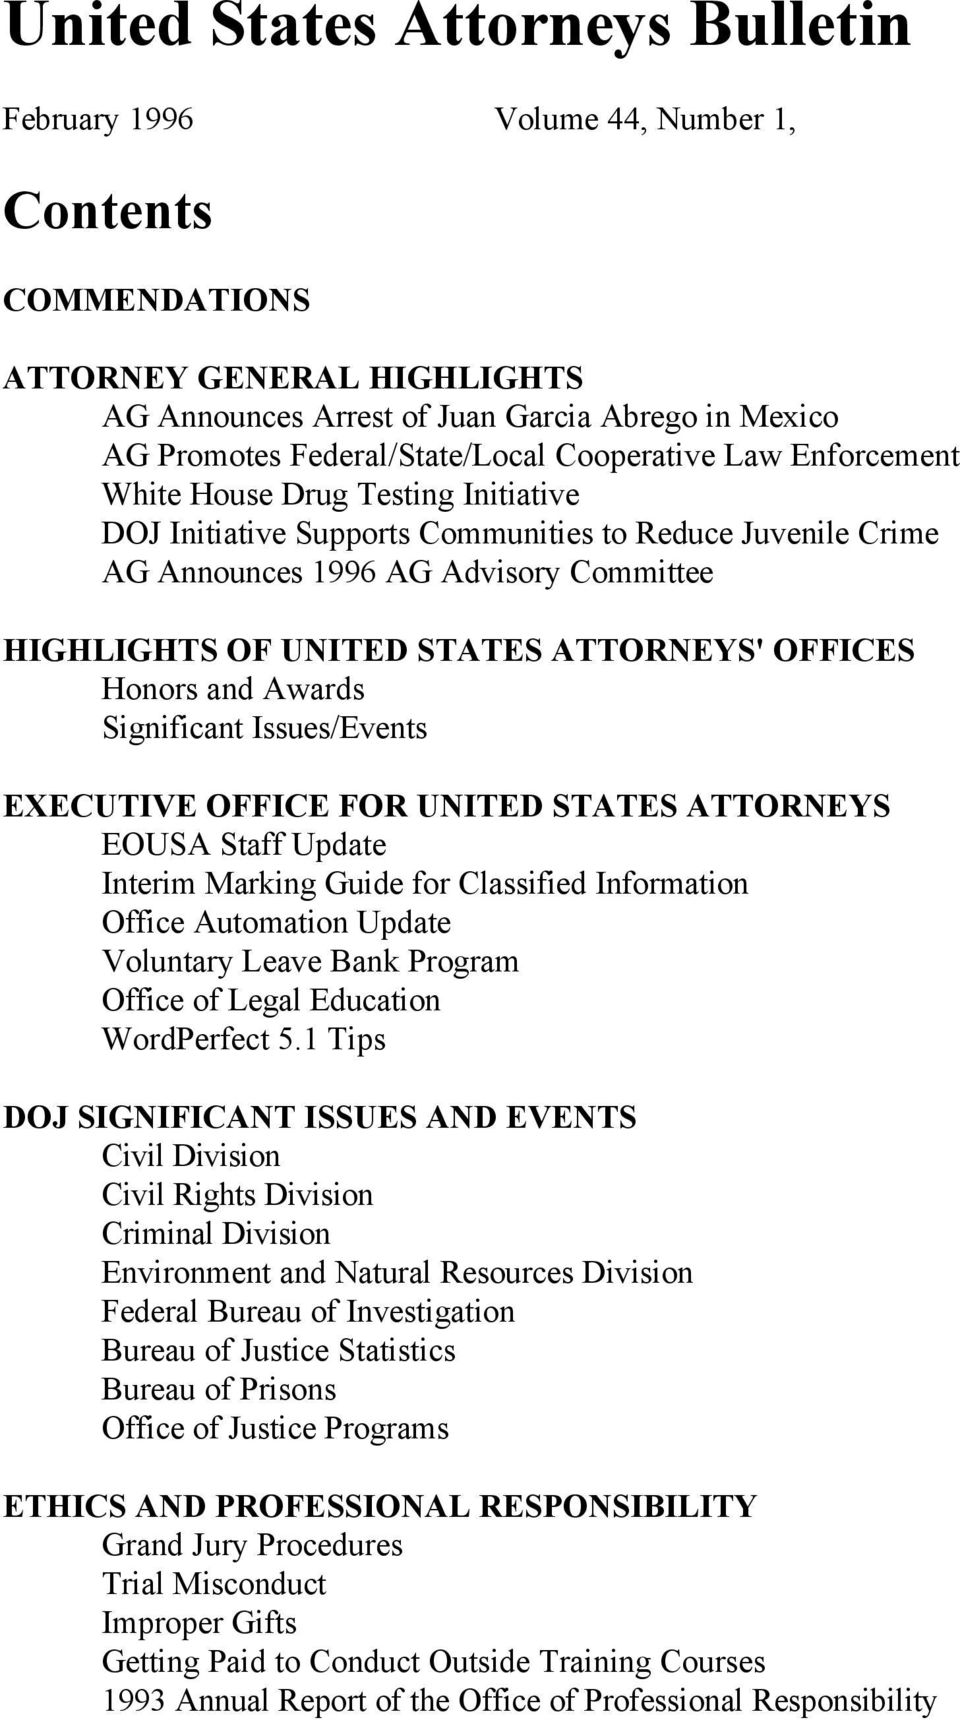 UNITED STATES ATTORNEYS' OFFICES Honors and Awards Significant Issues/Events EXECUTIVE OFFICE FOR UNITED STATES ATTORNEYS EOUSA Staff Update Interim Marking Guide for Classified Information Office